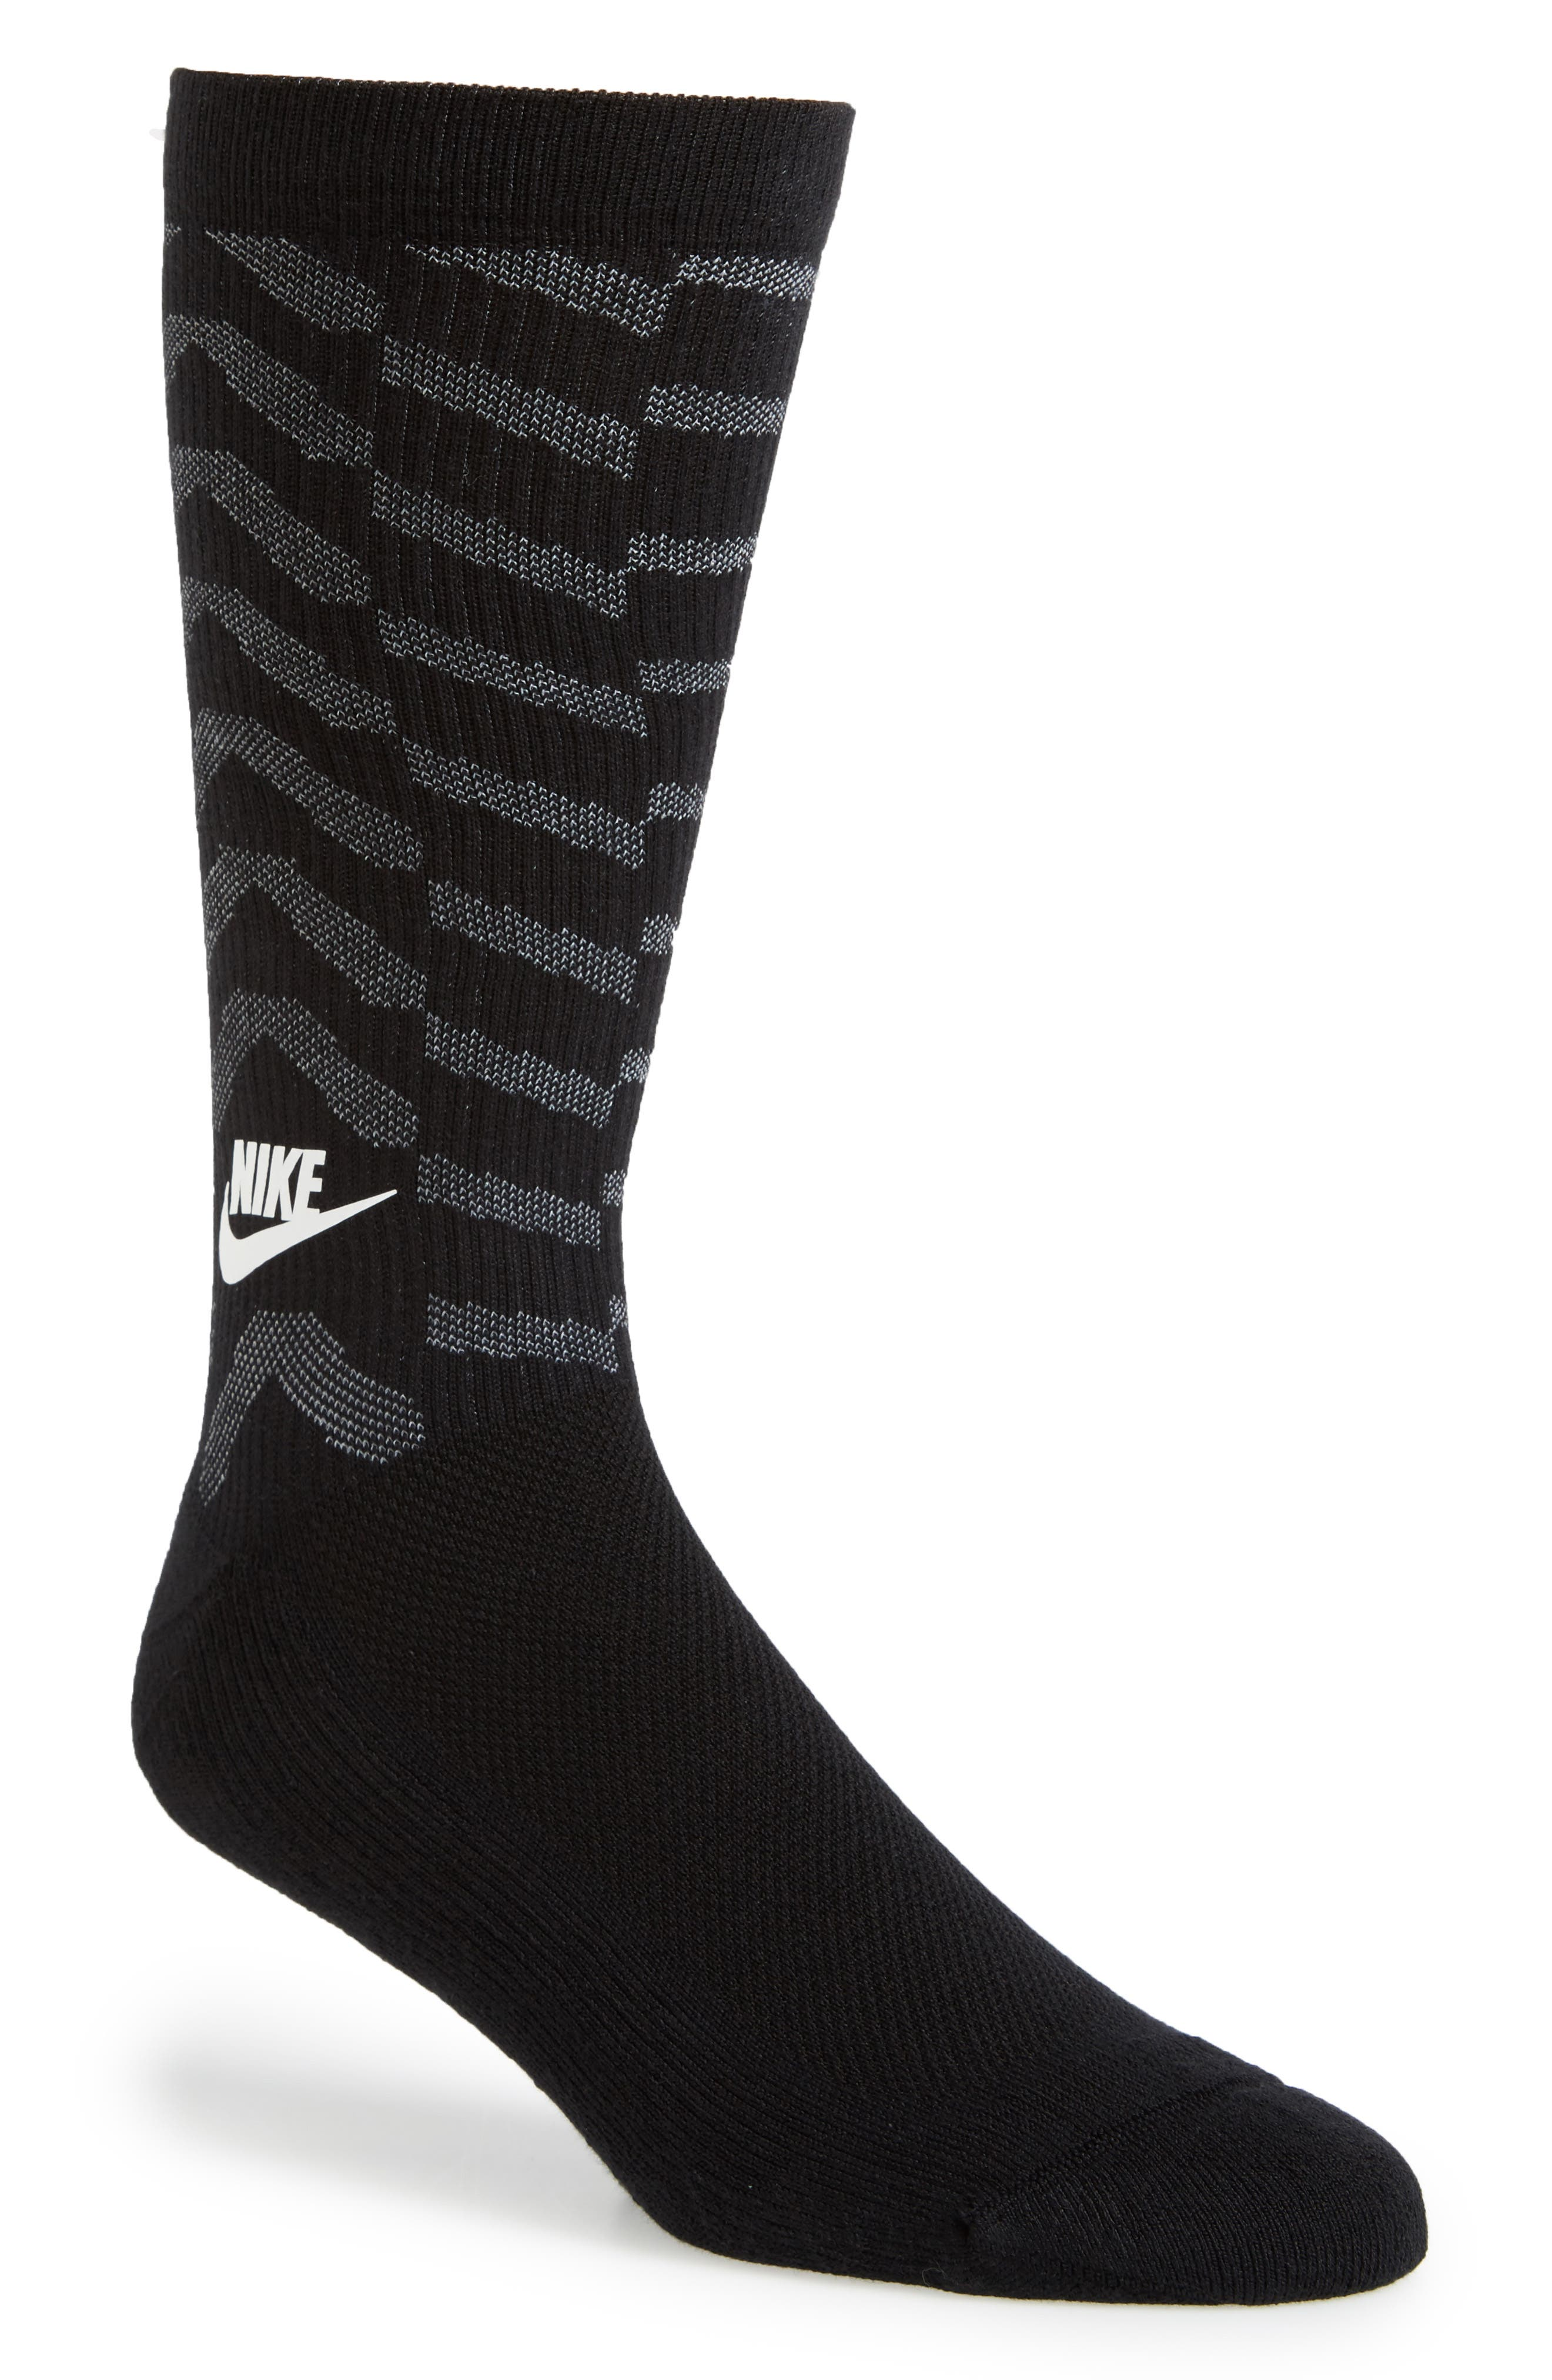 Nike Statement Graphic Socks